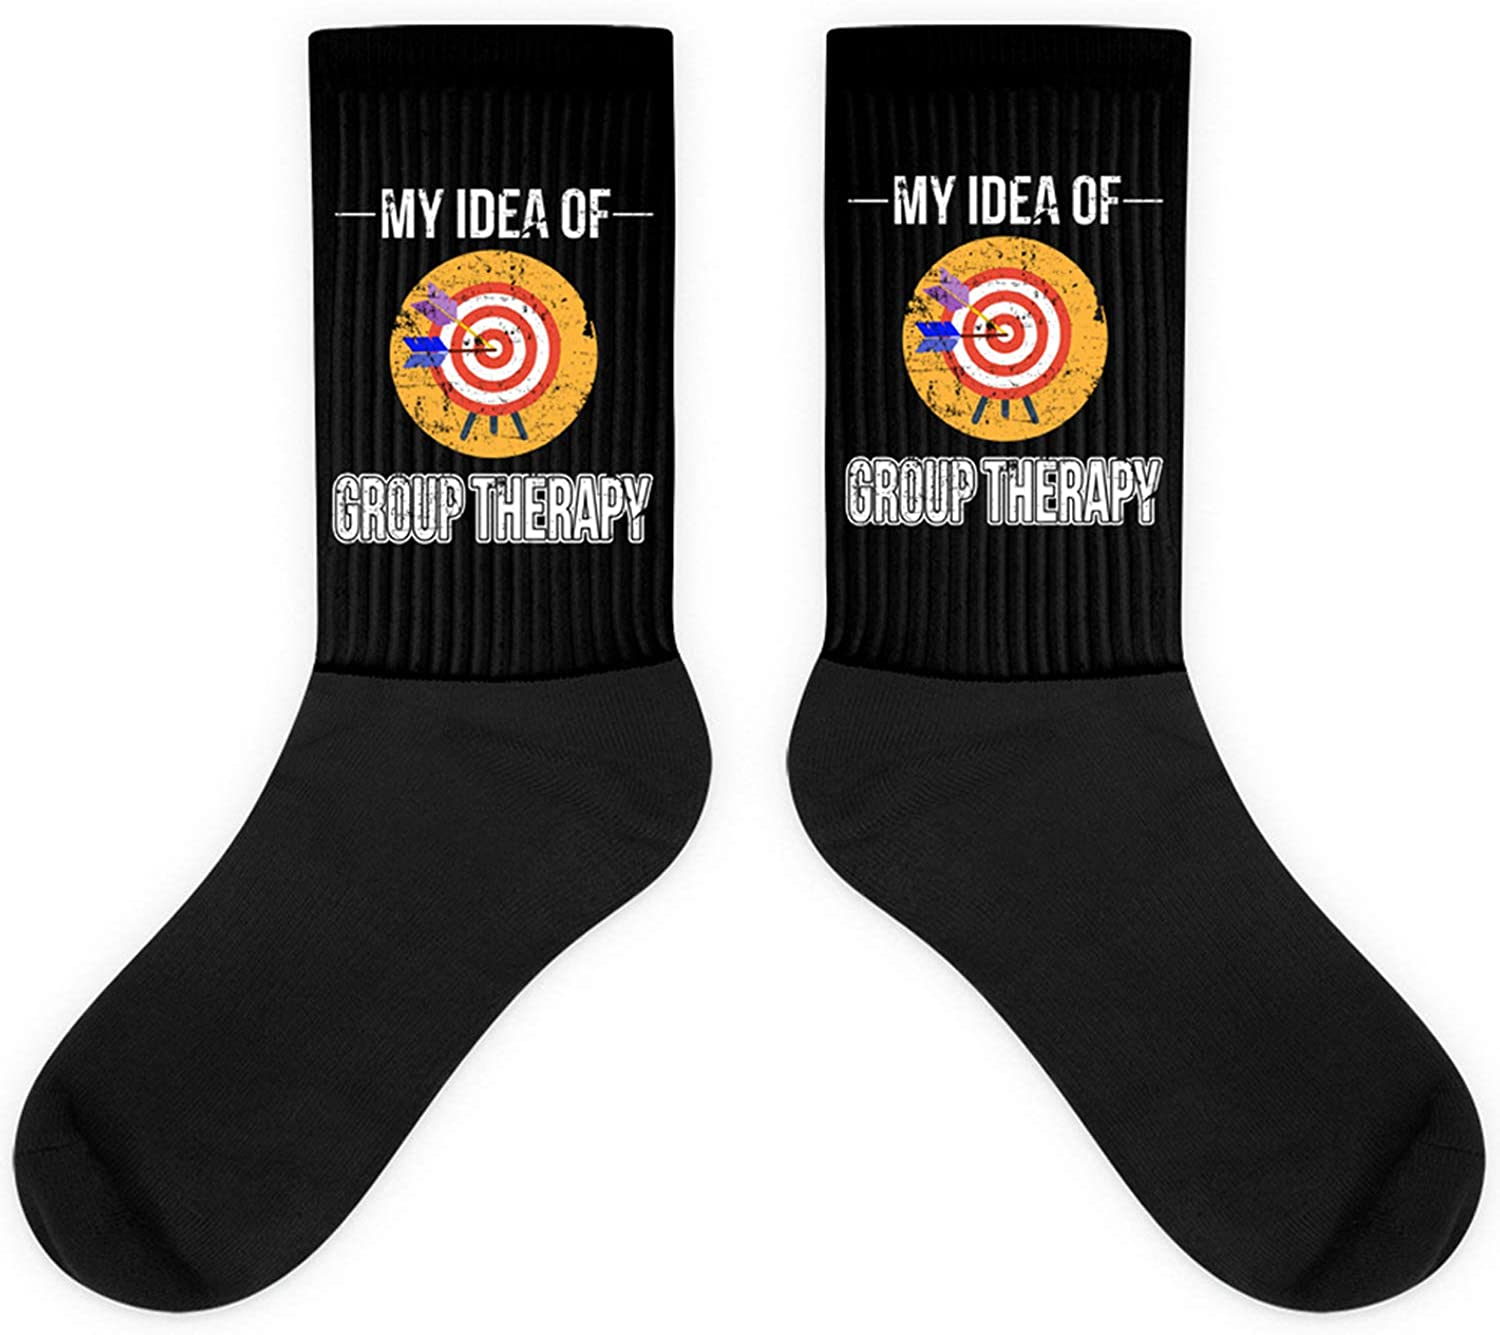 Youth USA Archery Gift,My Idea Of Group Therapy,Bow, Archers Soc